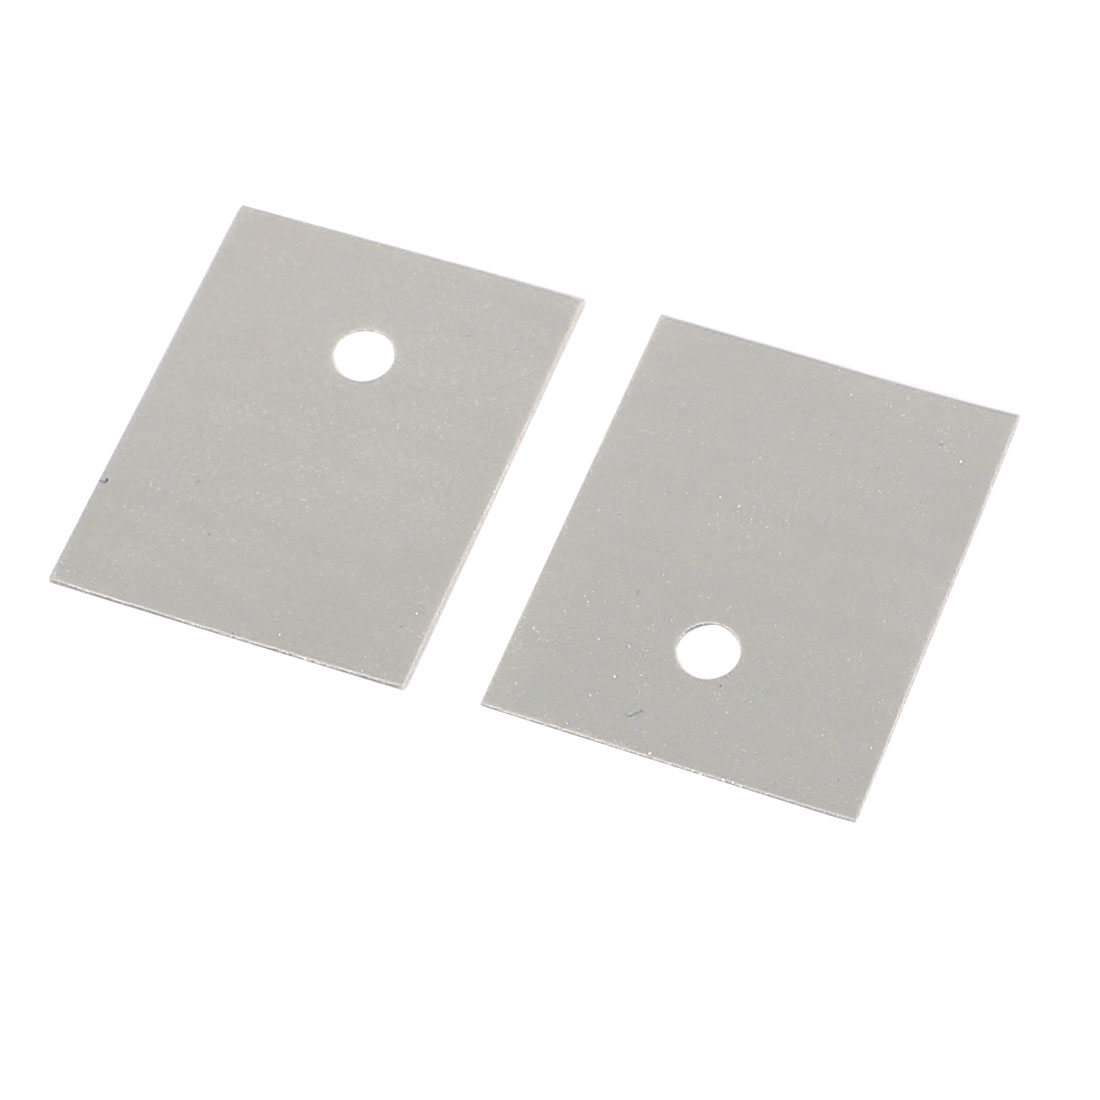 150 Pcs 25mm x 20mm x 0.3mm Silicone Thermal Insulation Pad Sheet - image 1 of 2